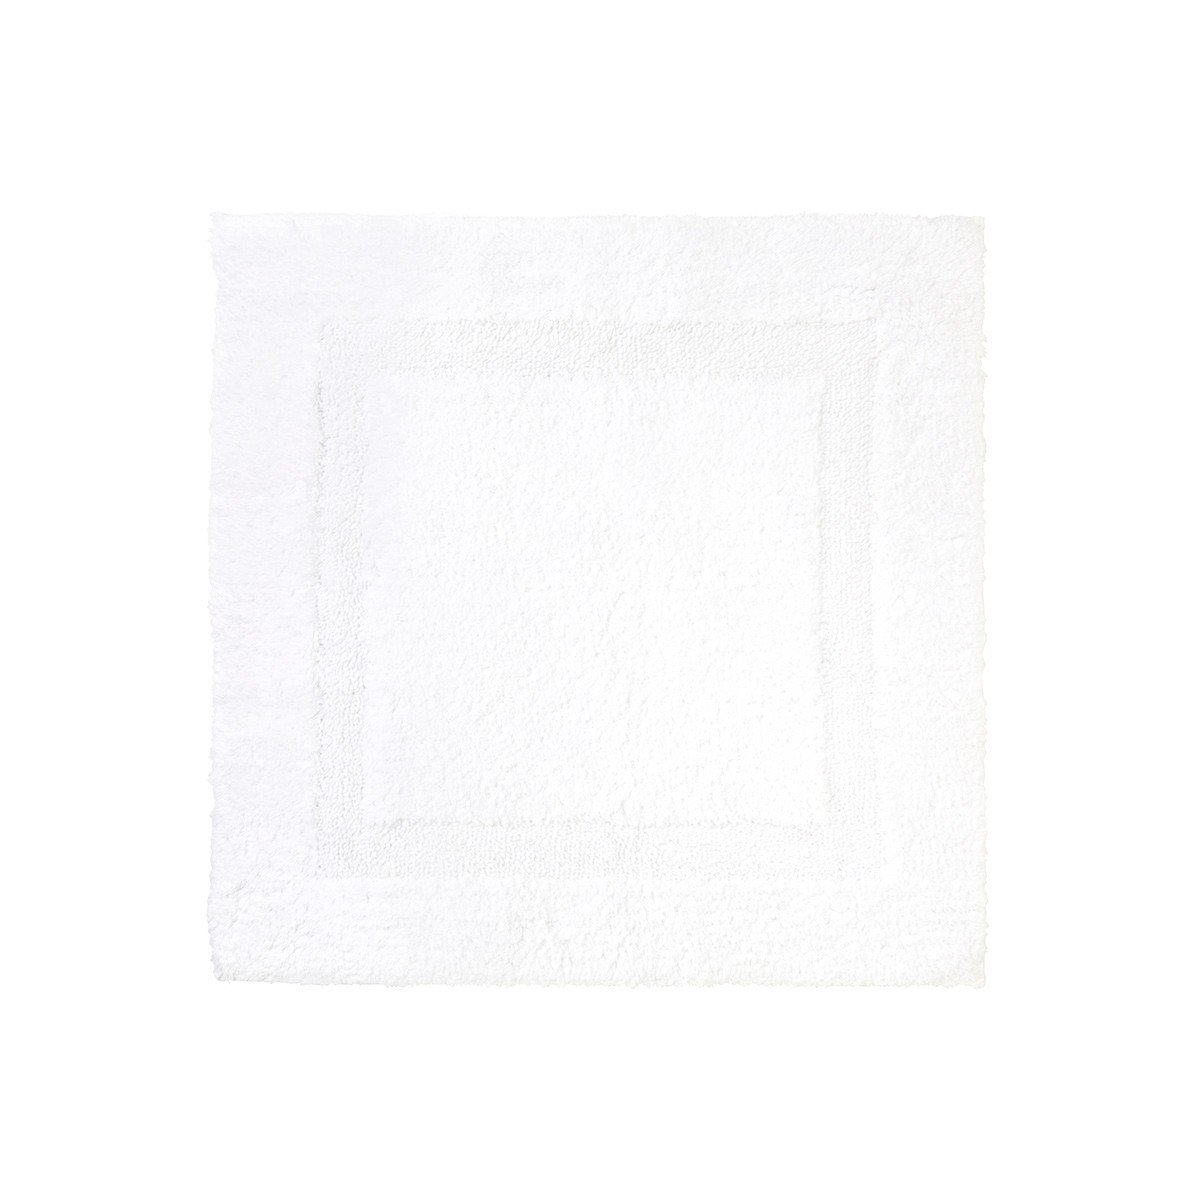 Aquilon Blanc Reversible Bath Rug by Yves Delorme | Fig Linens - White, square bath mat, rug